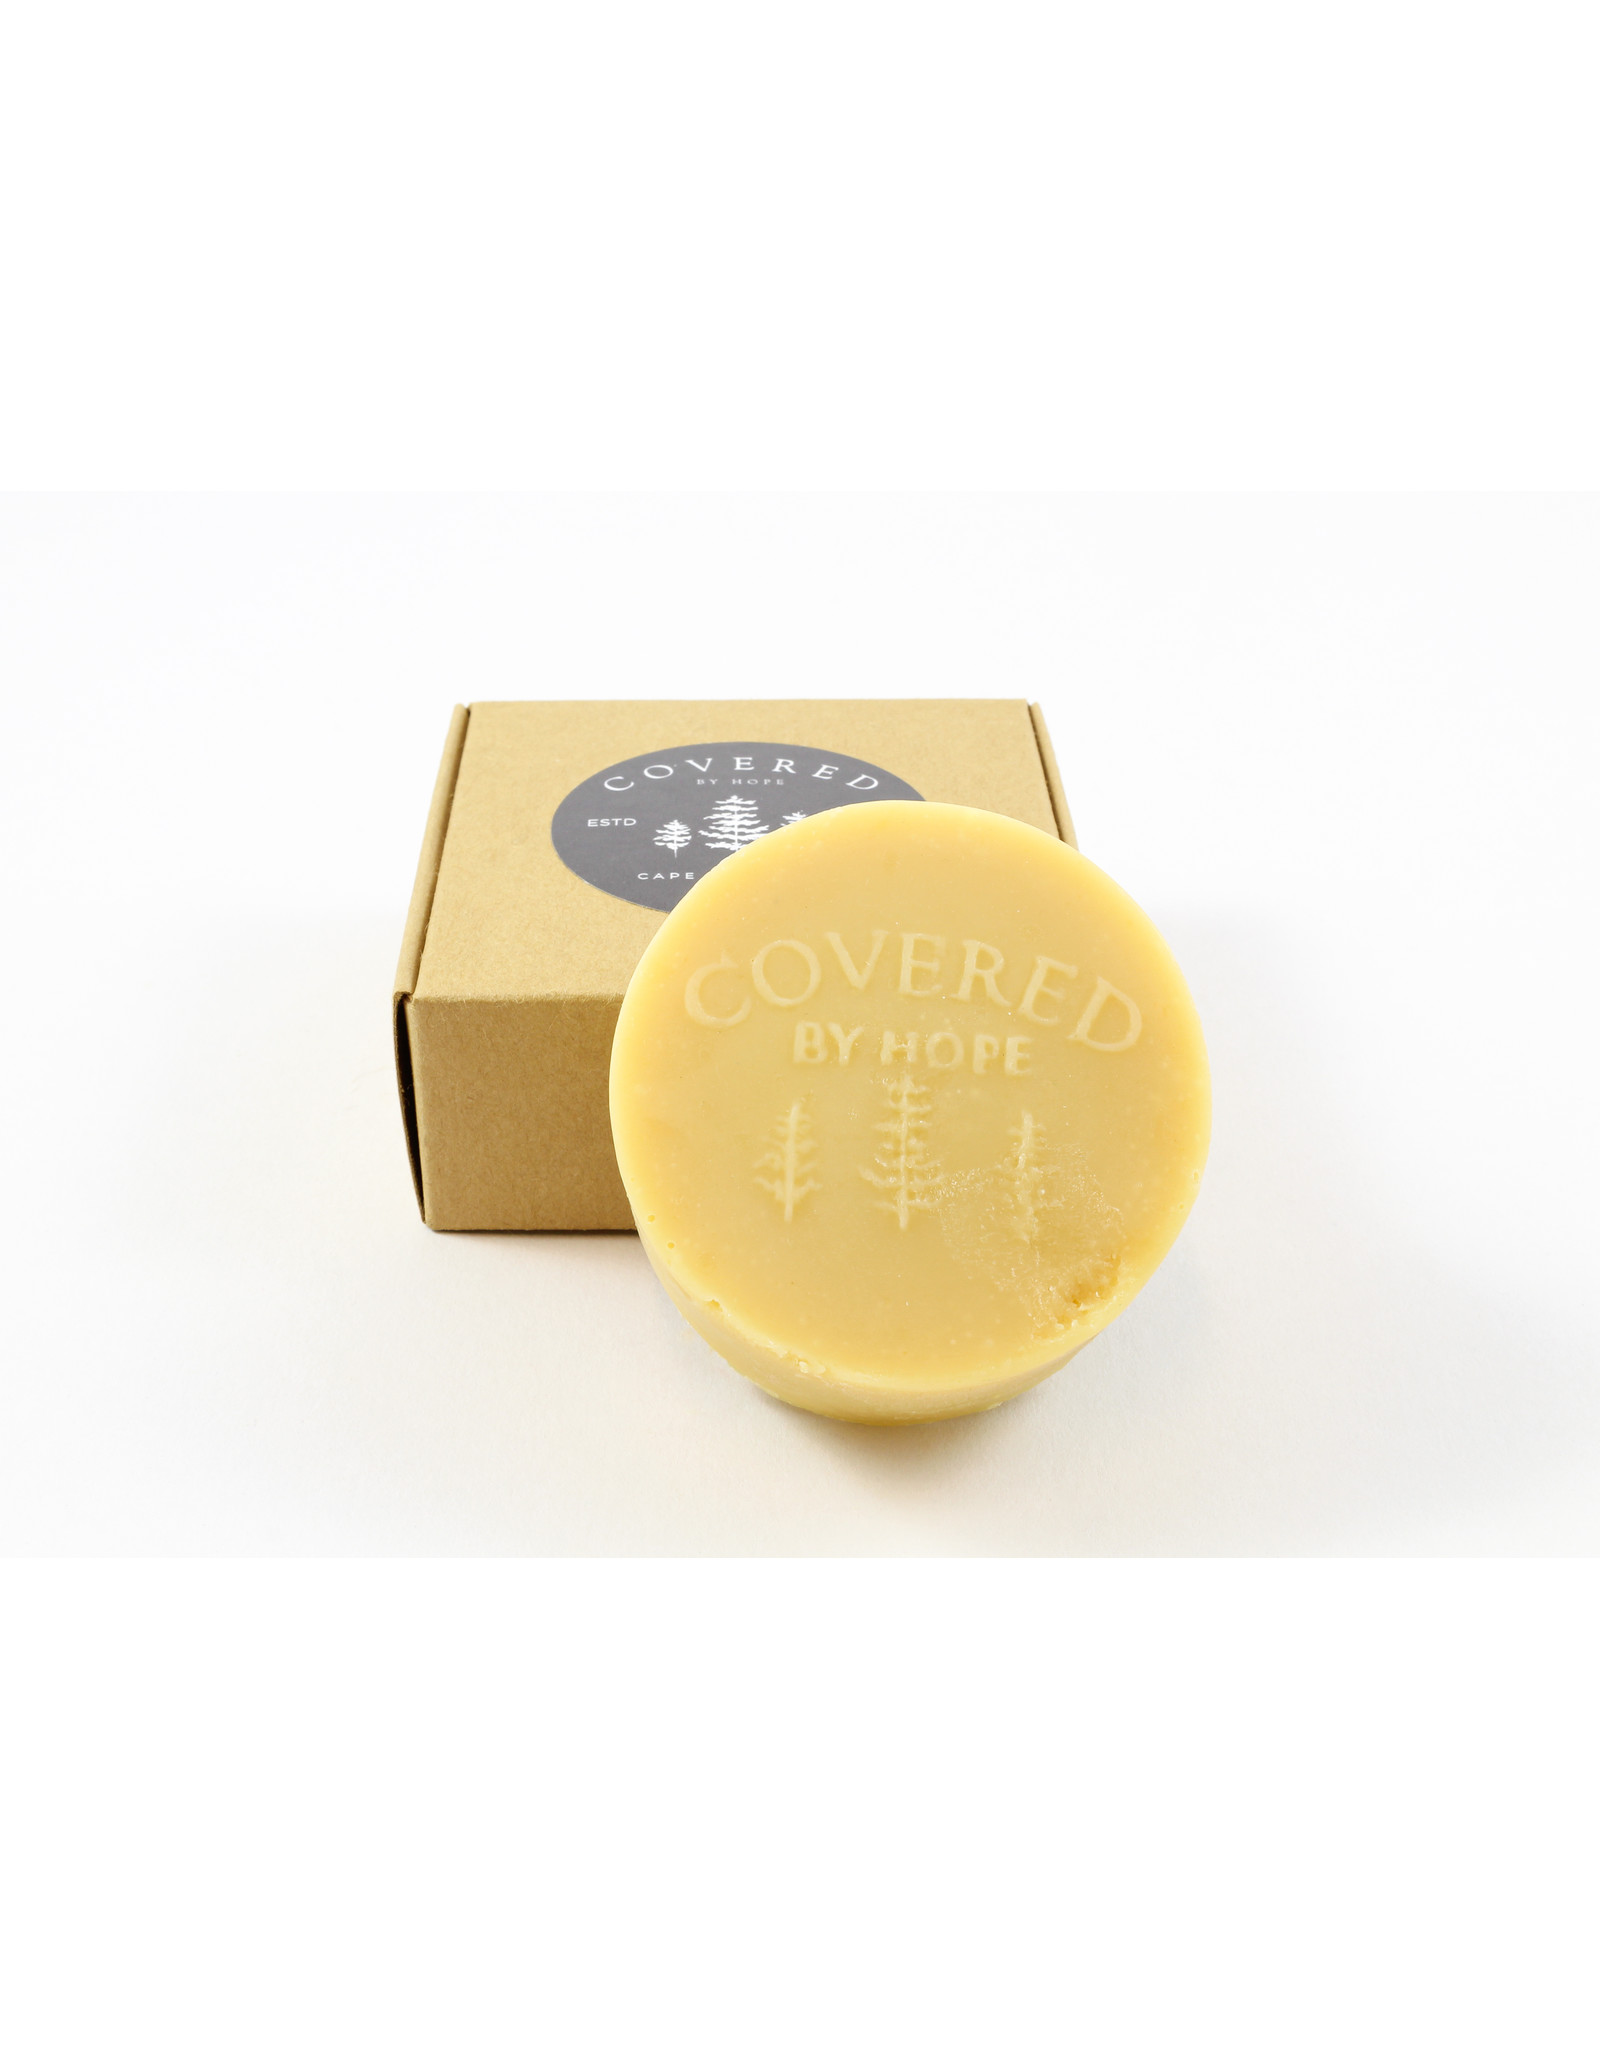 Hope Project Shampoo Bar by Covered by Hope